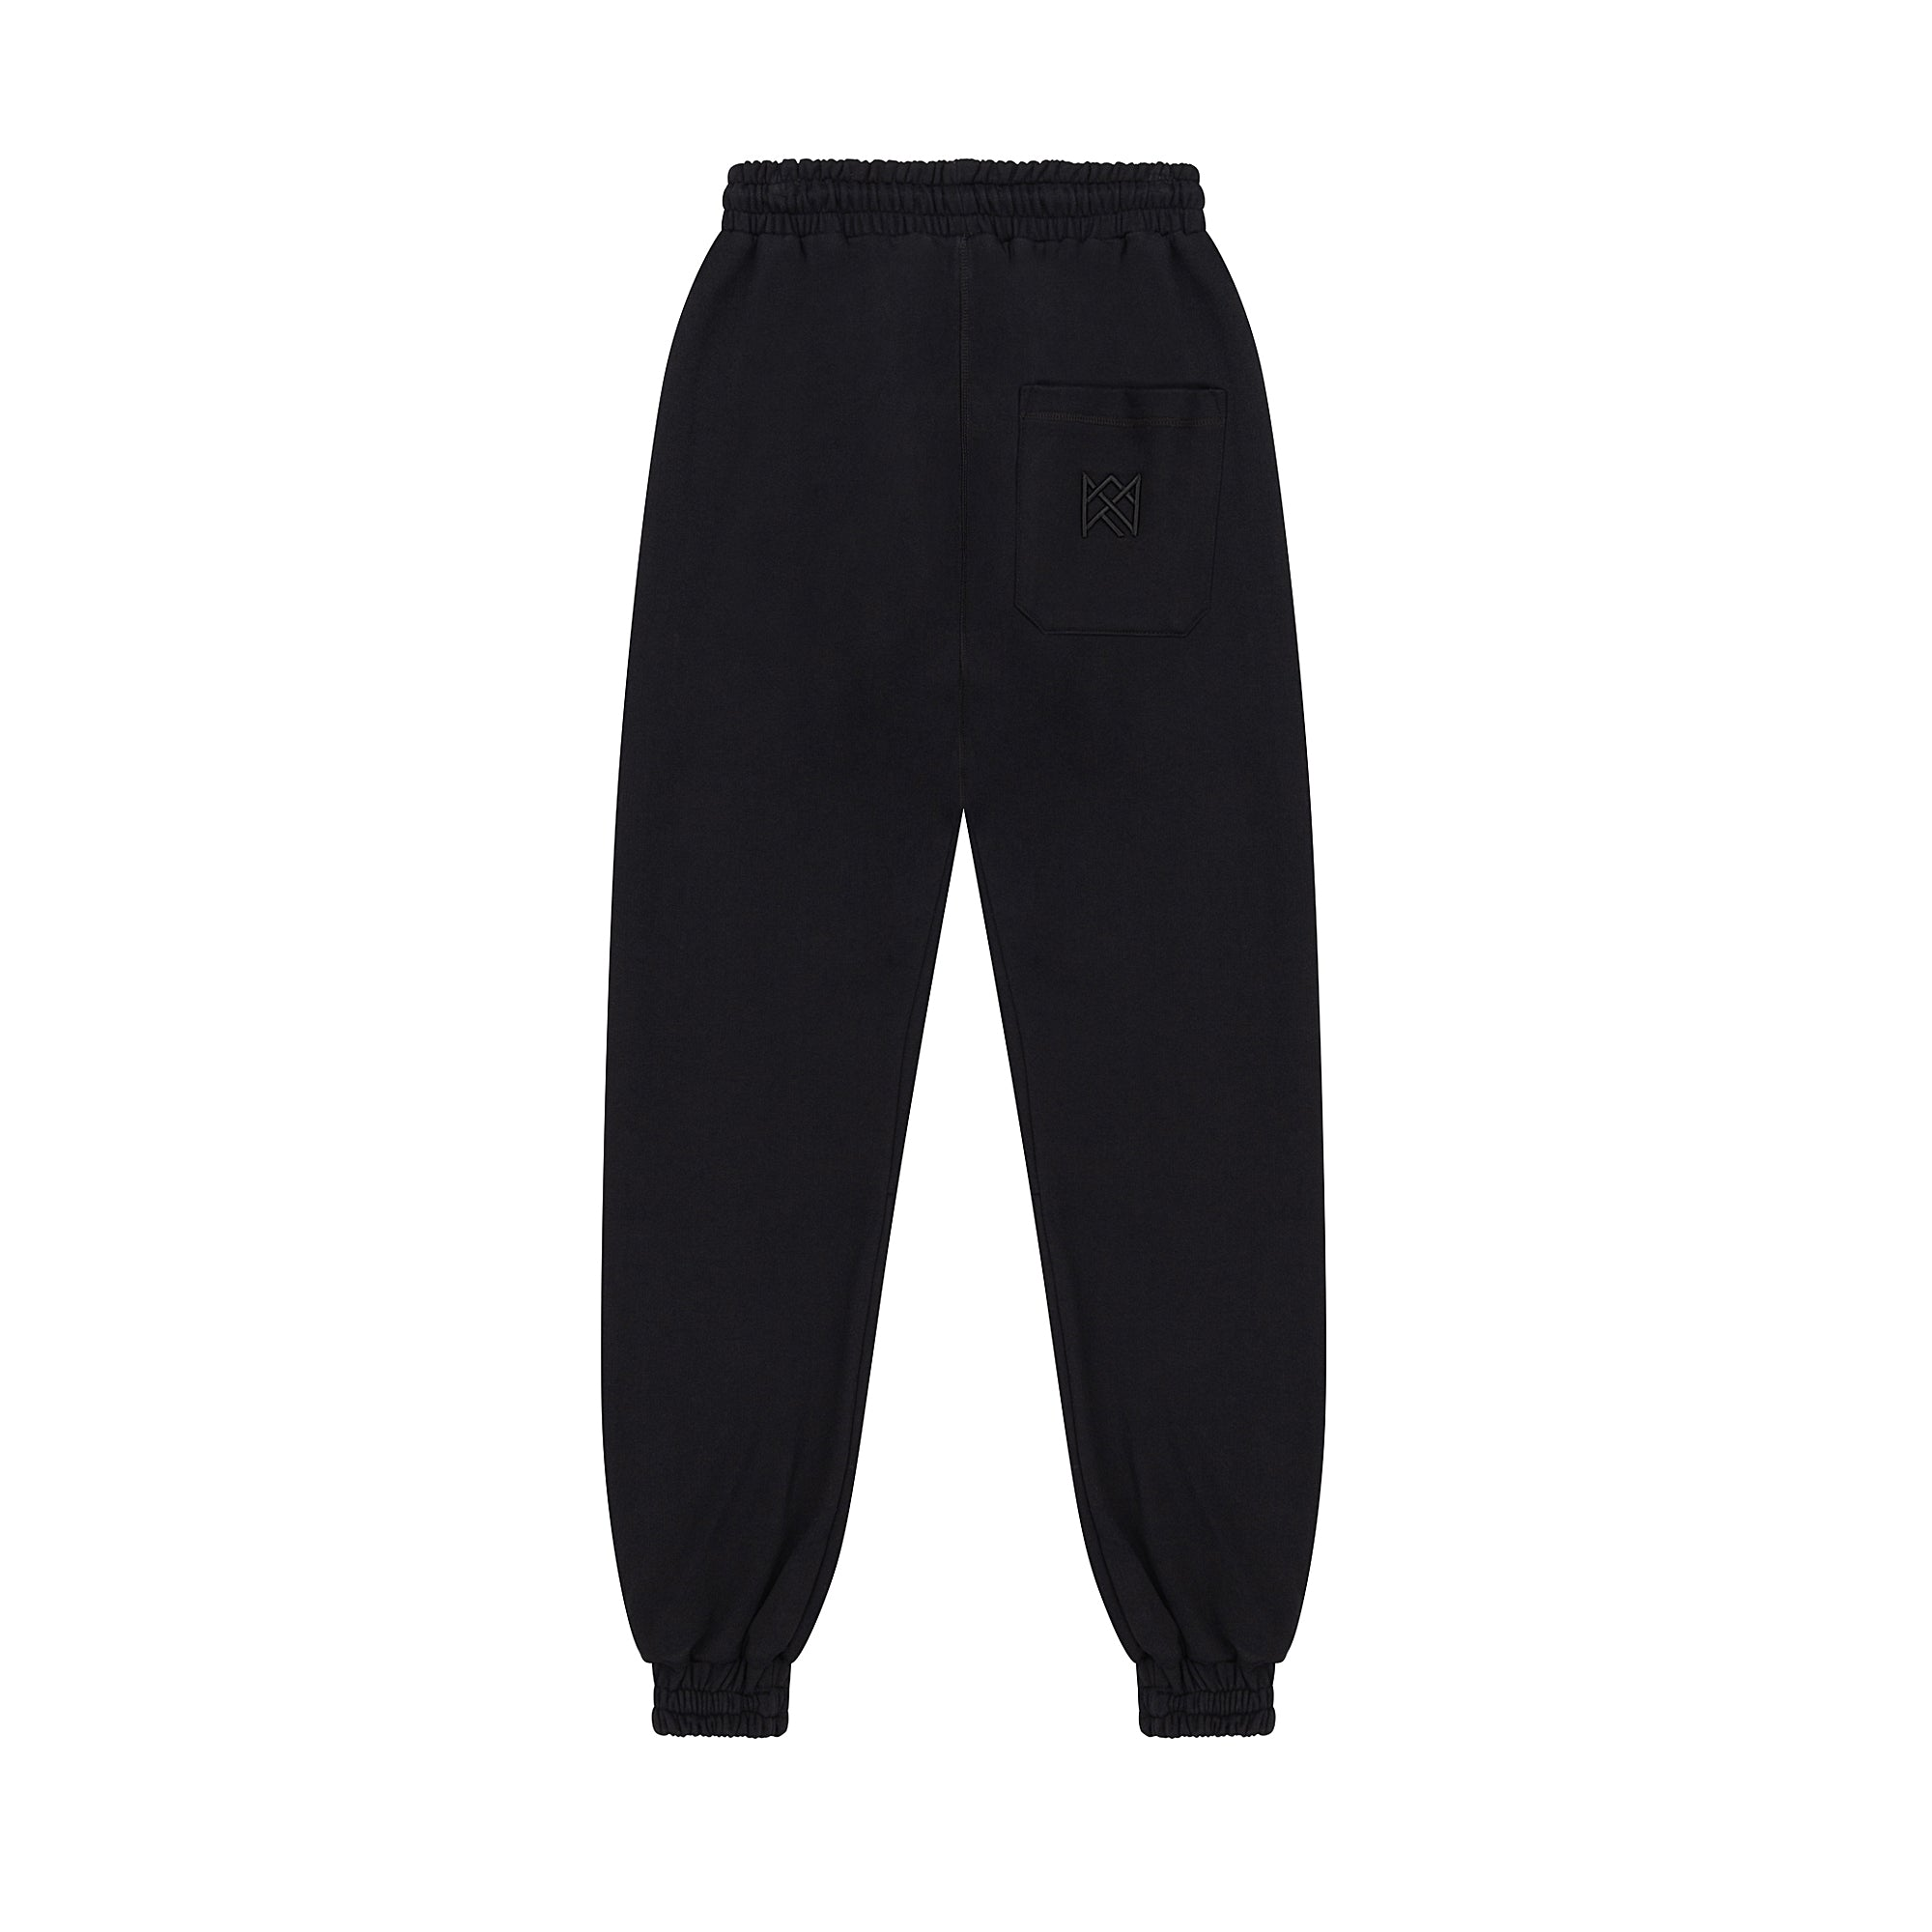 MAYOR SWEATPANTS - BLACK